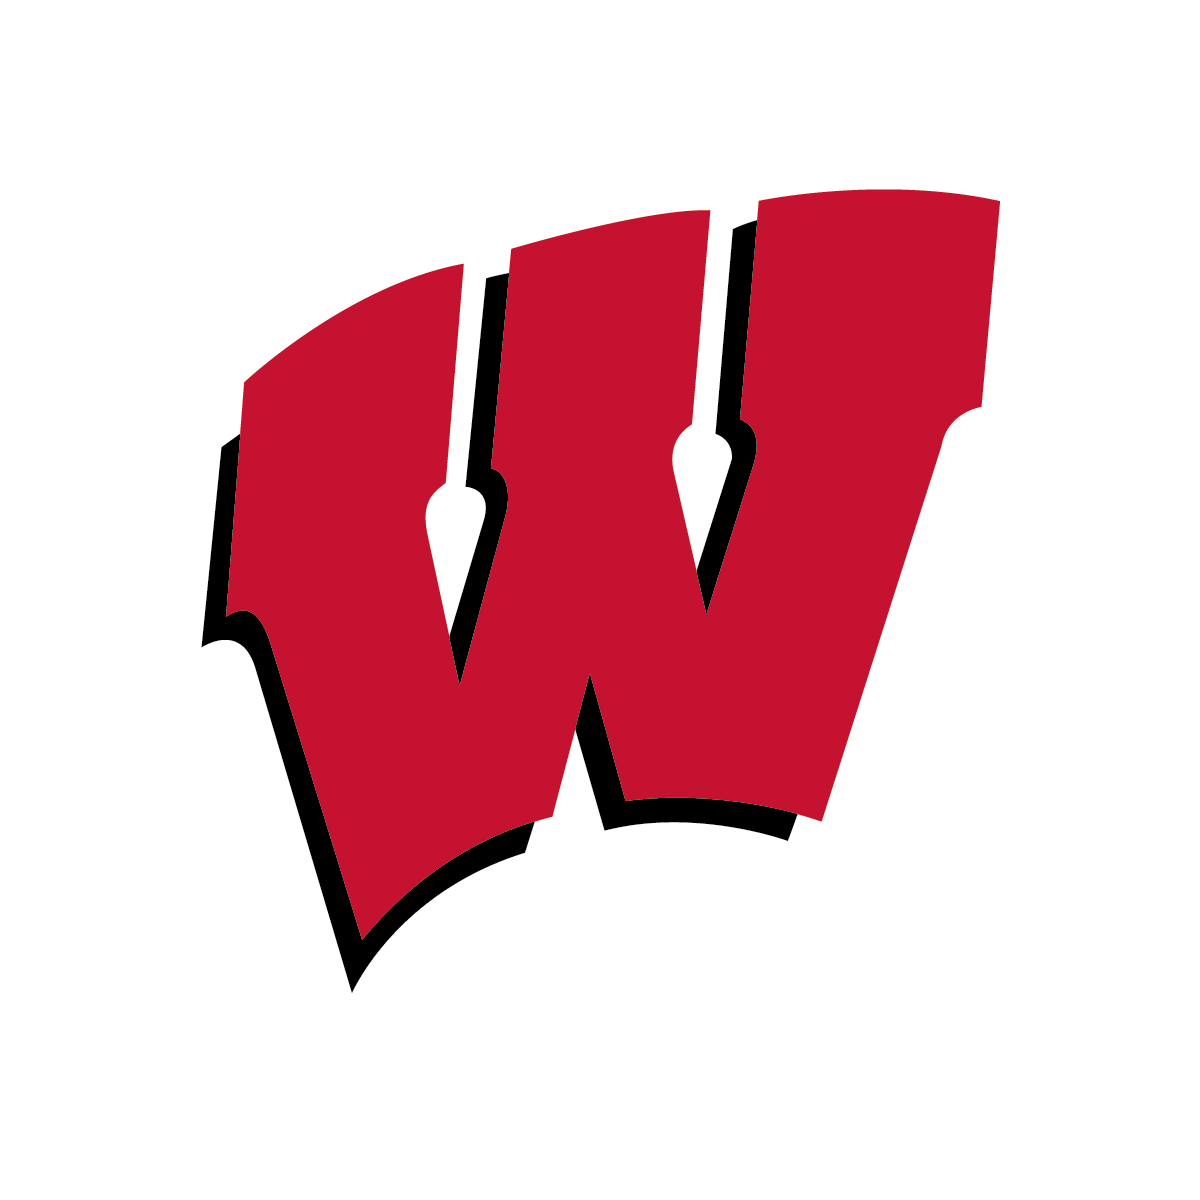 ONTAL_ICON_WISCONSIN_NORMAL.png